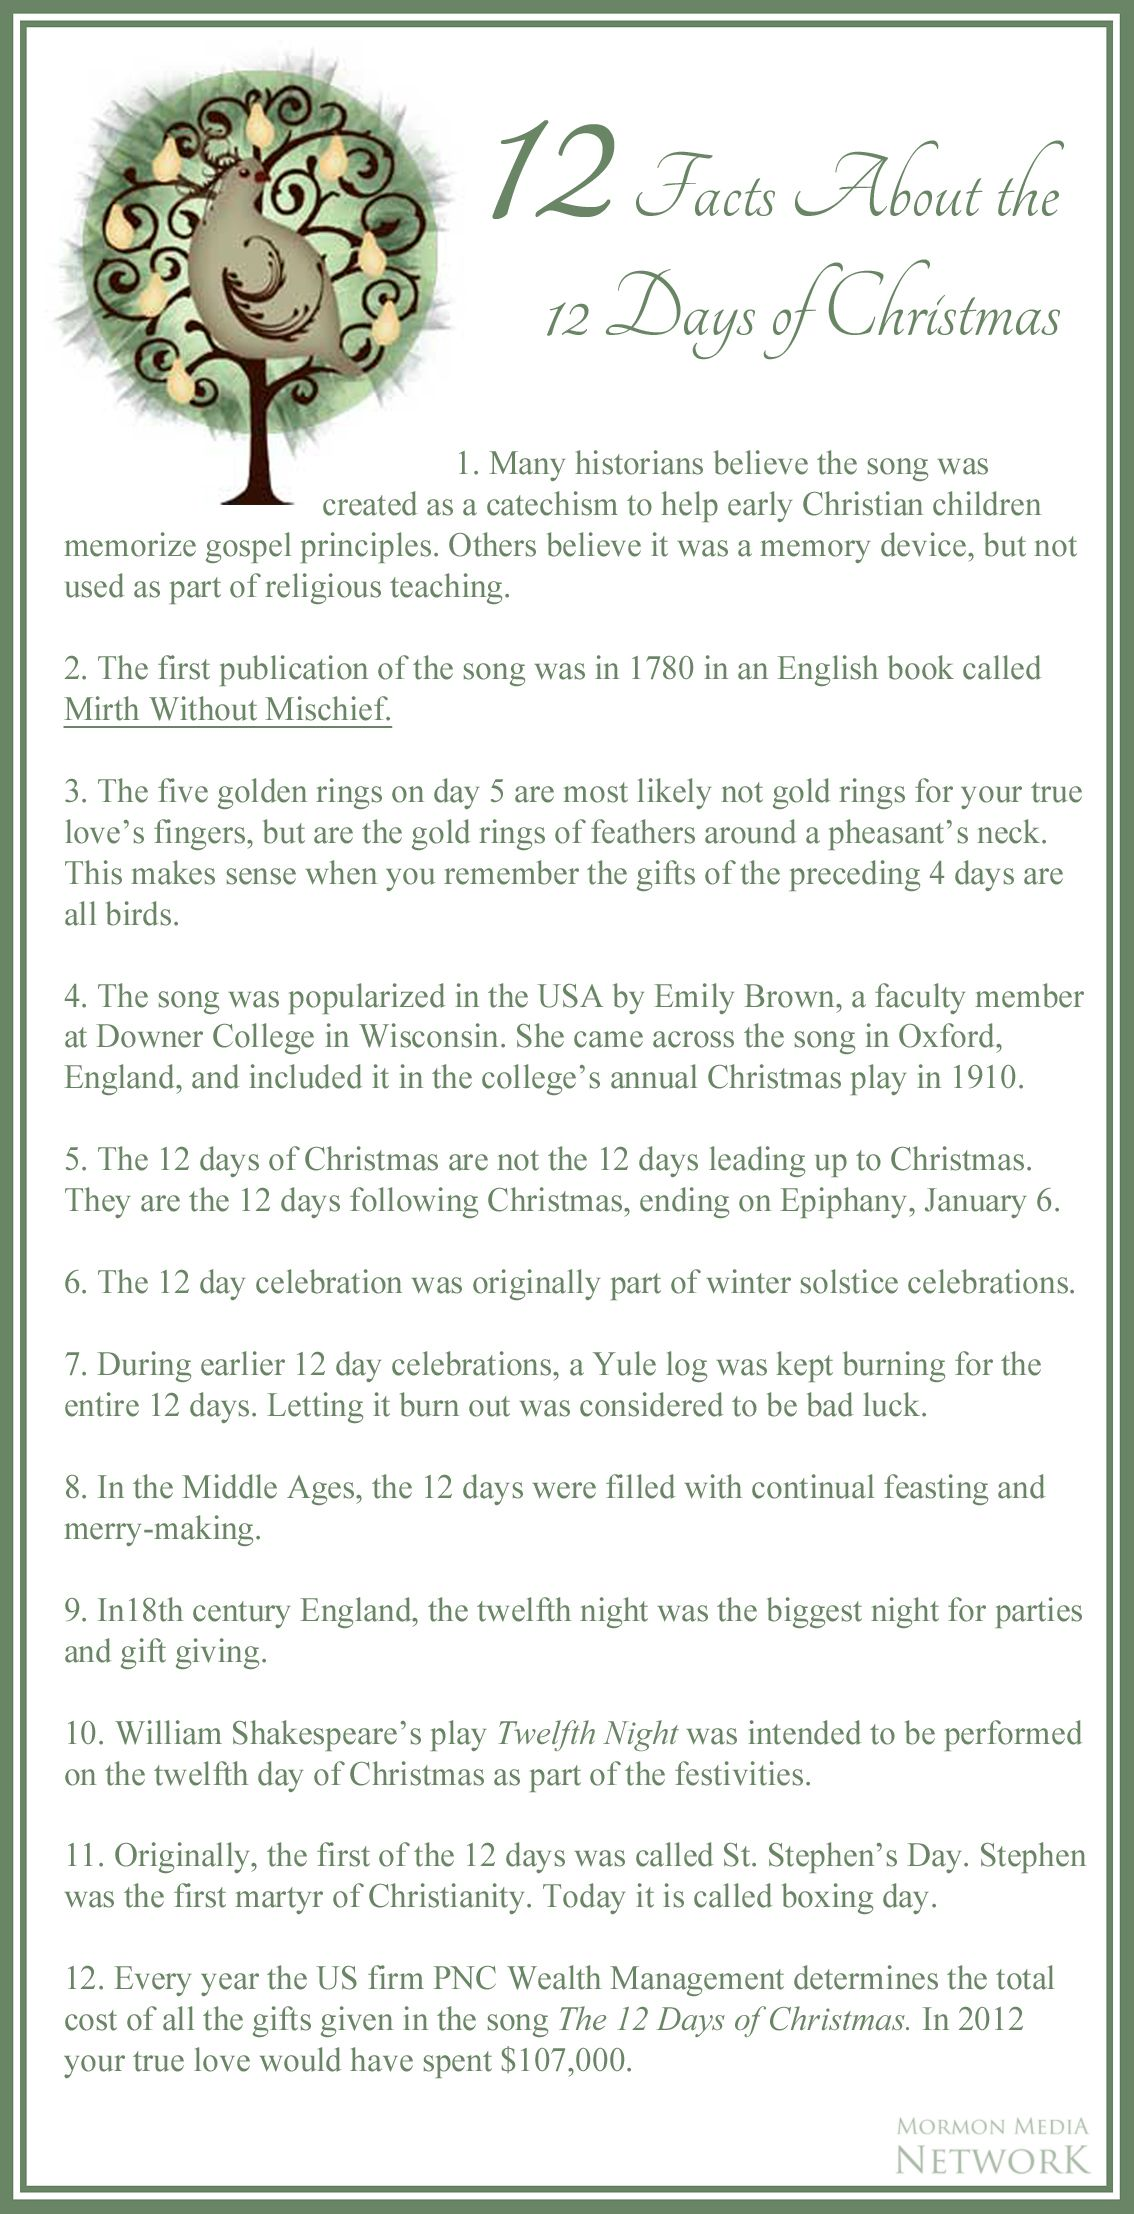 12 Facts About the 12 Days or Christmas … // image by: USA.gov ...